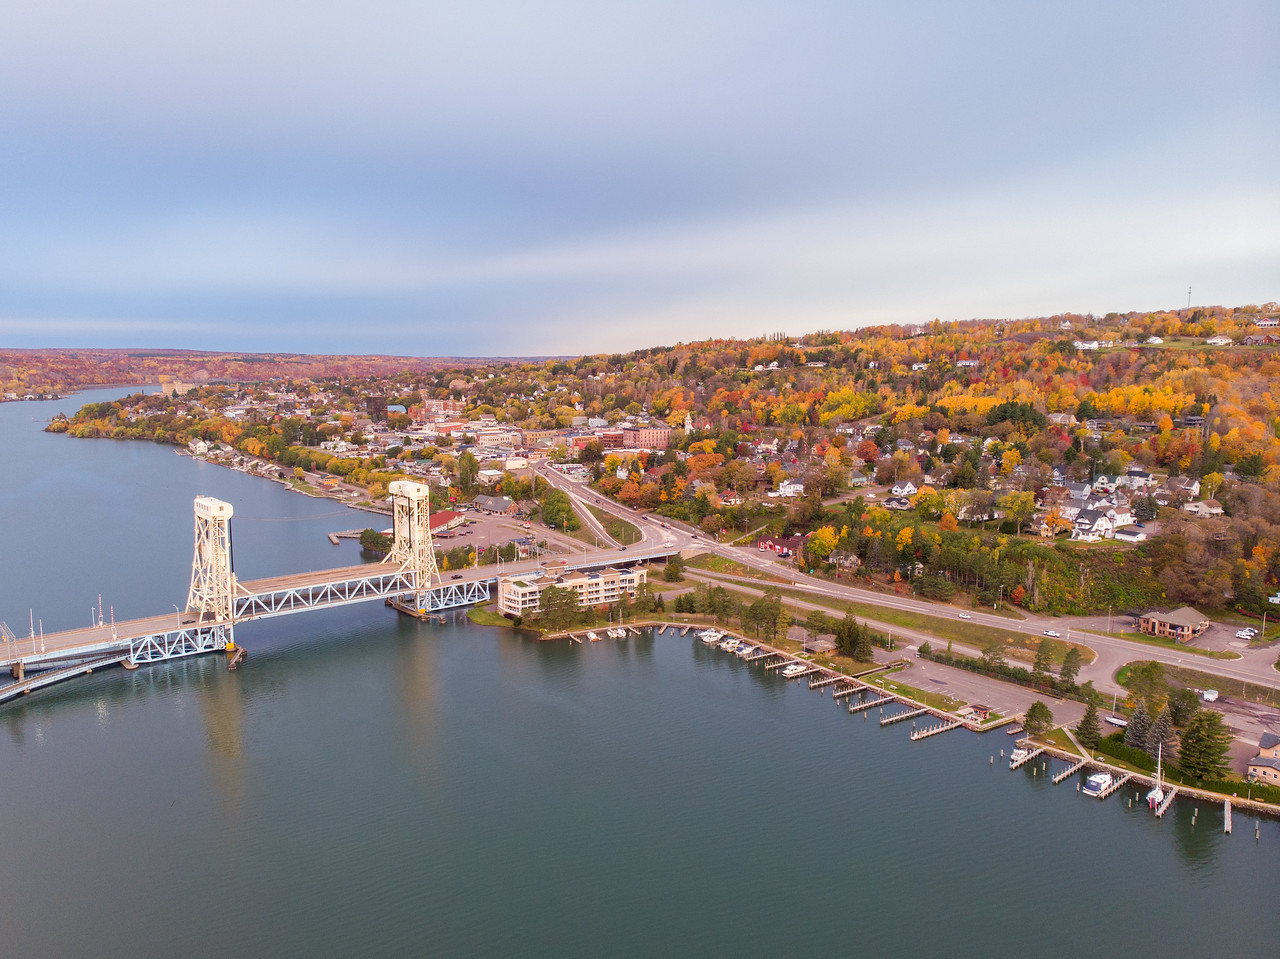 Drone view of Portage Lake Lift Bridge